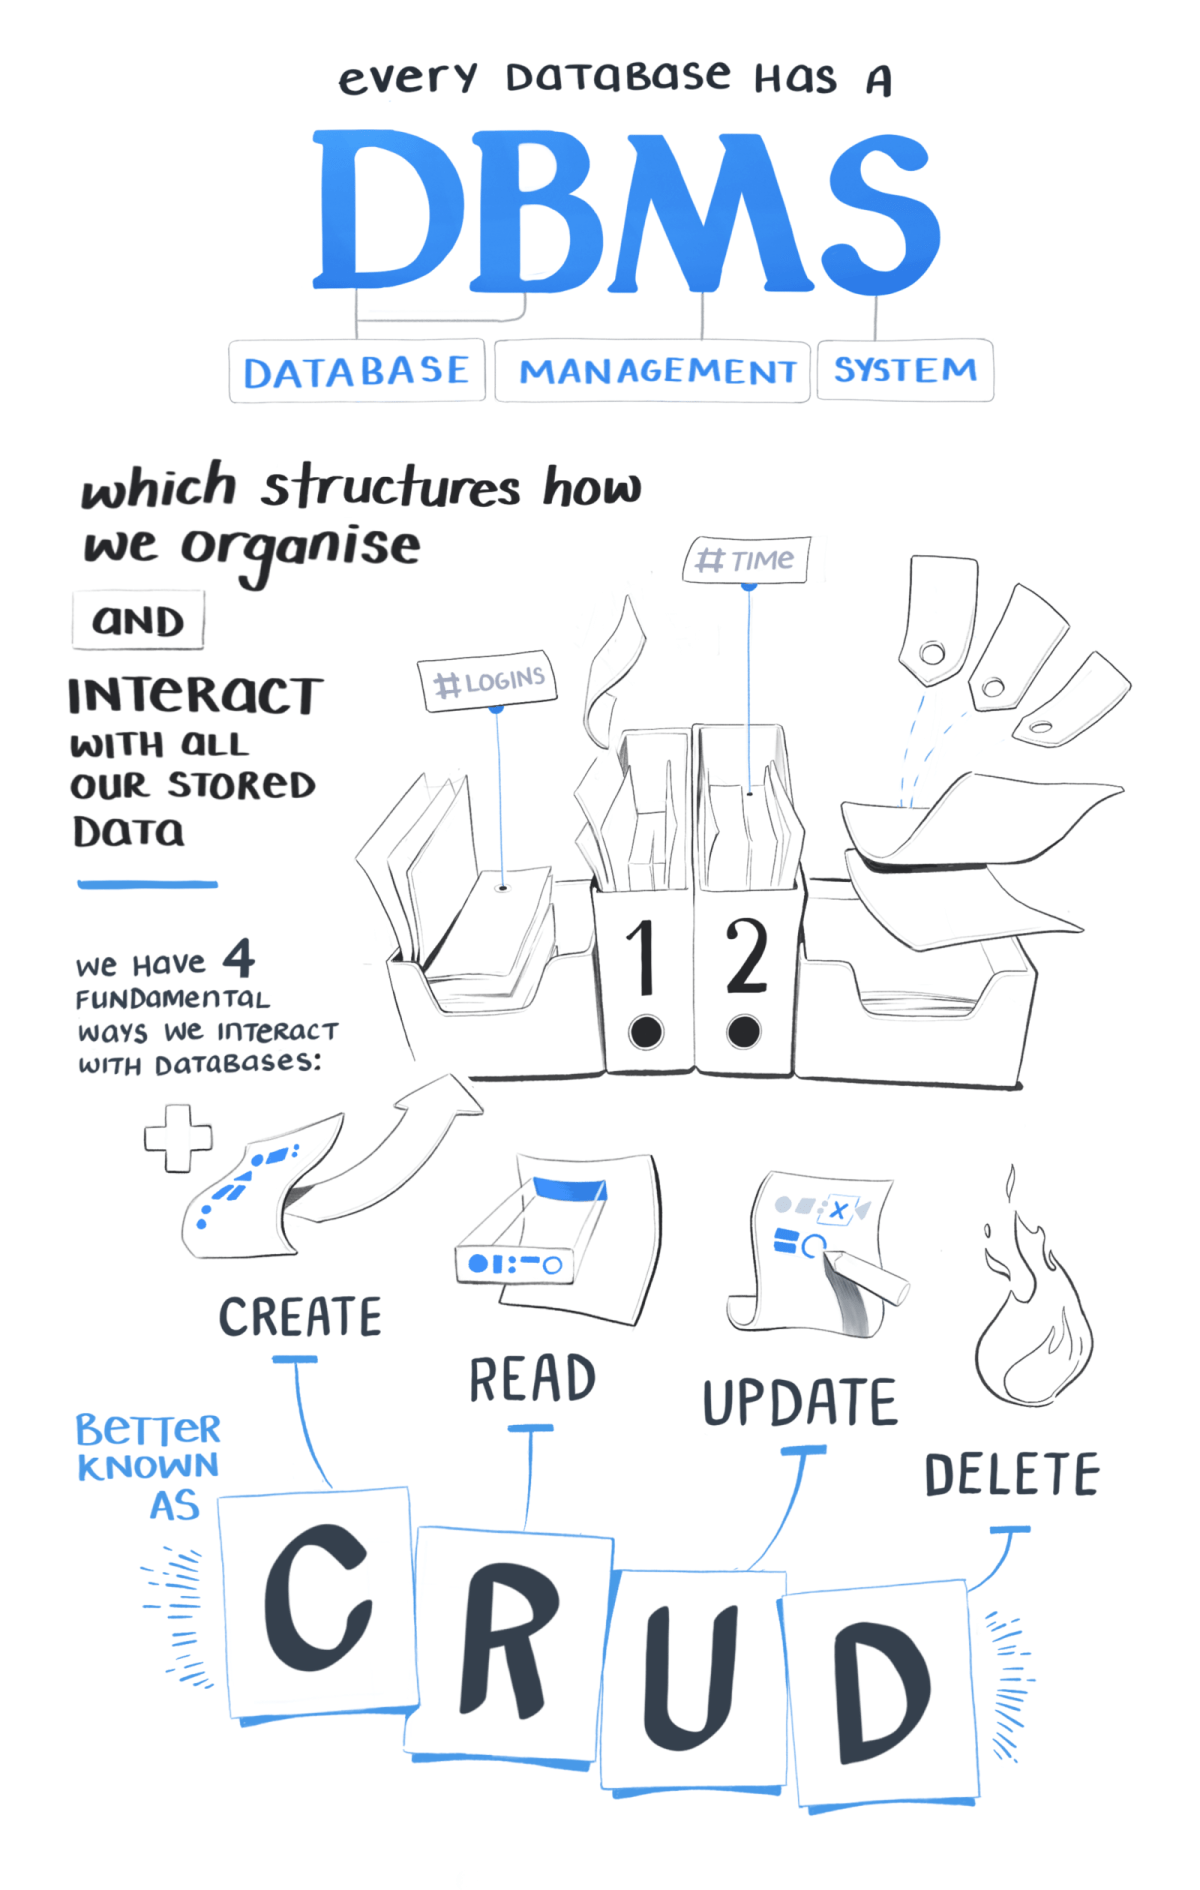 Every database has a DBMS - a database management system. This structures how we organise and interact with all our stored data. We have 4 fundamental ways we interact with databases. We can create, read, update, and delete. Better known as CRUD.